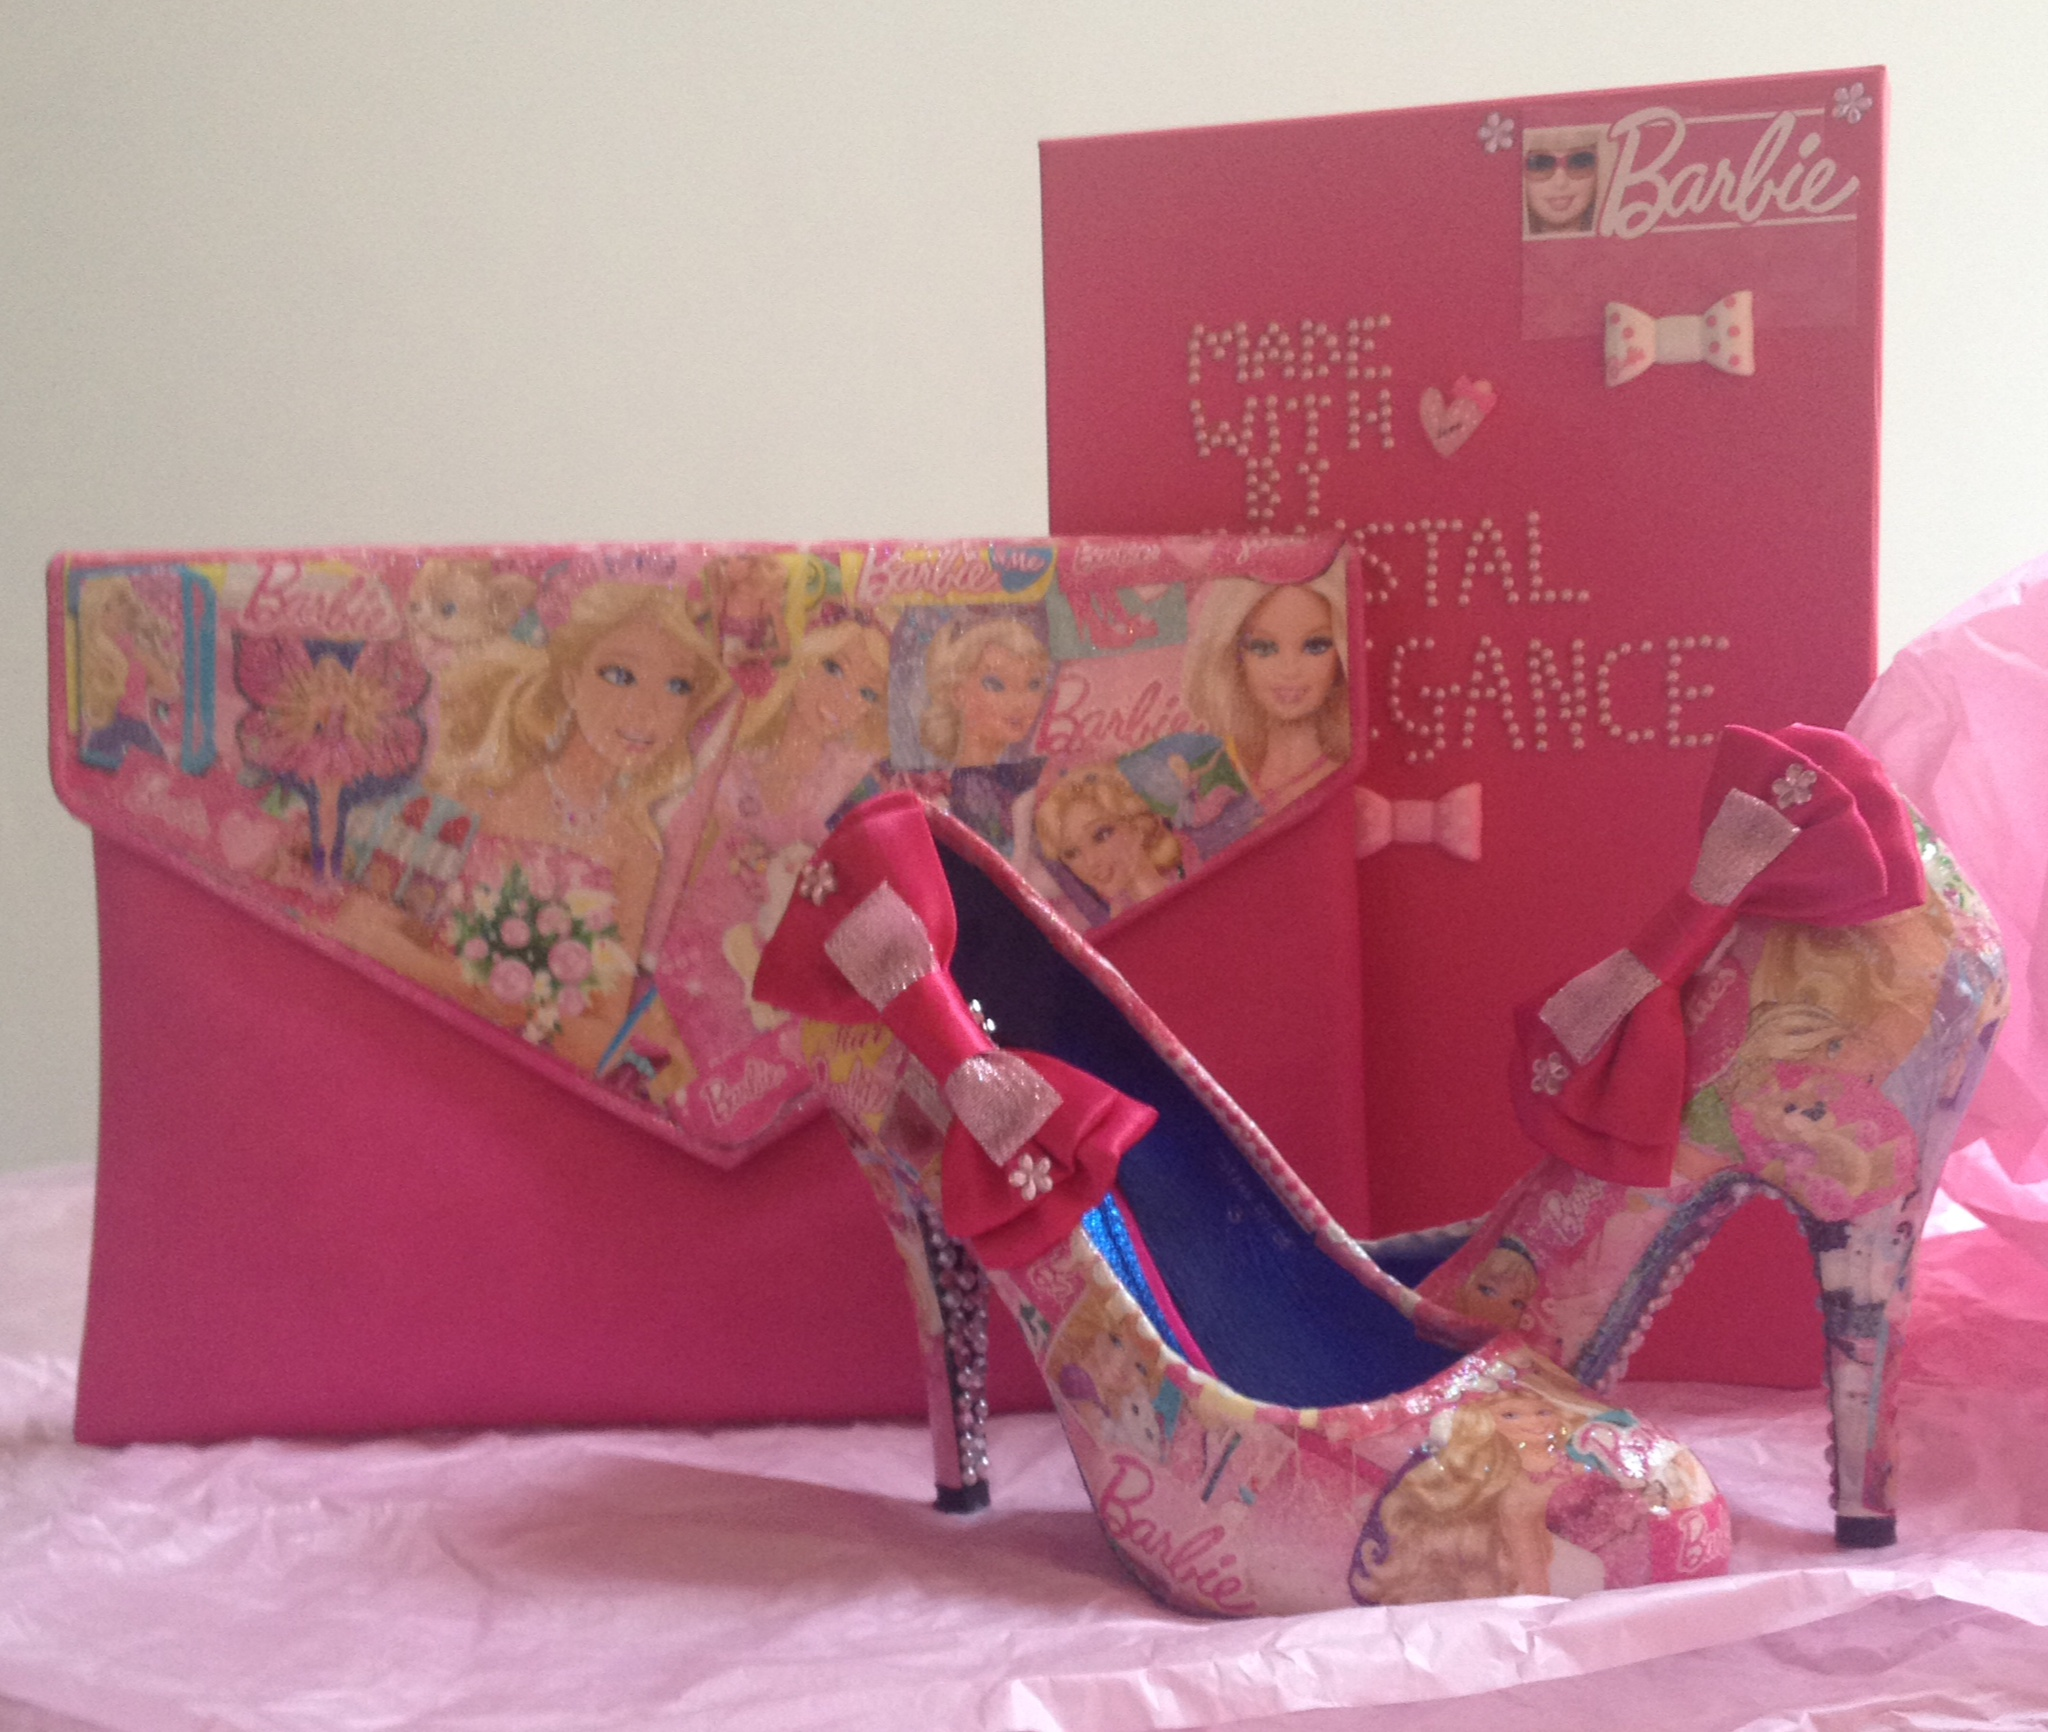 Barbie bag and shoes